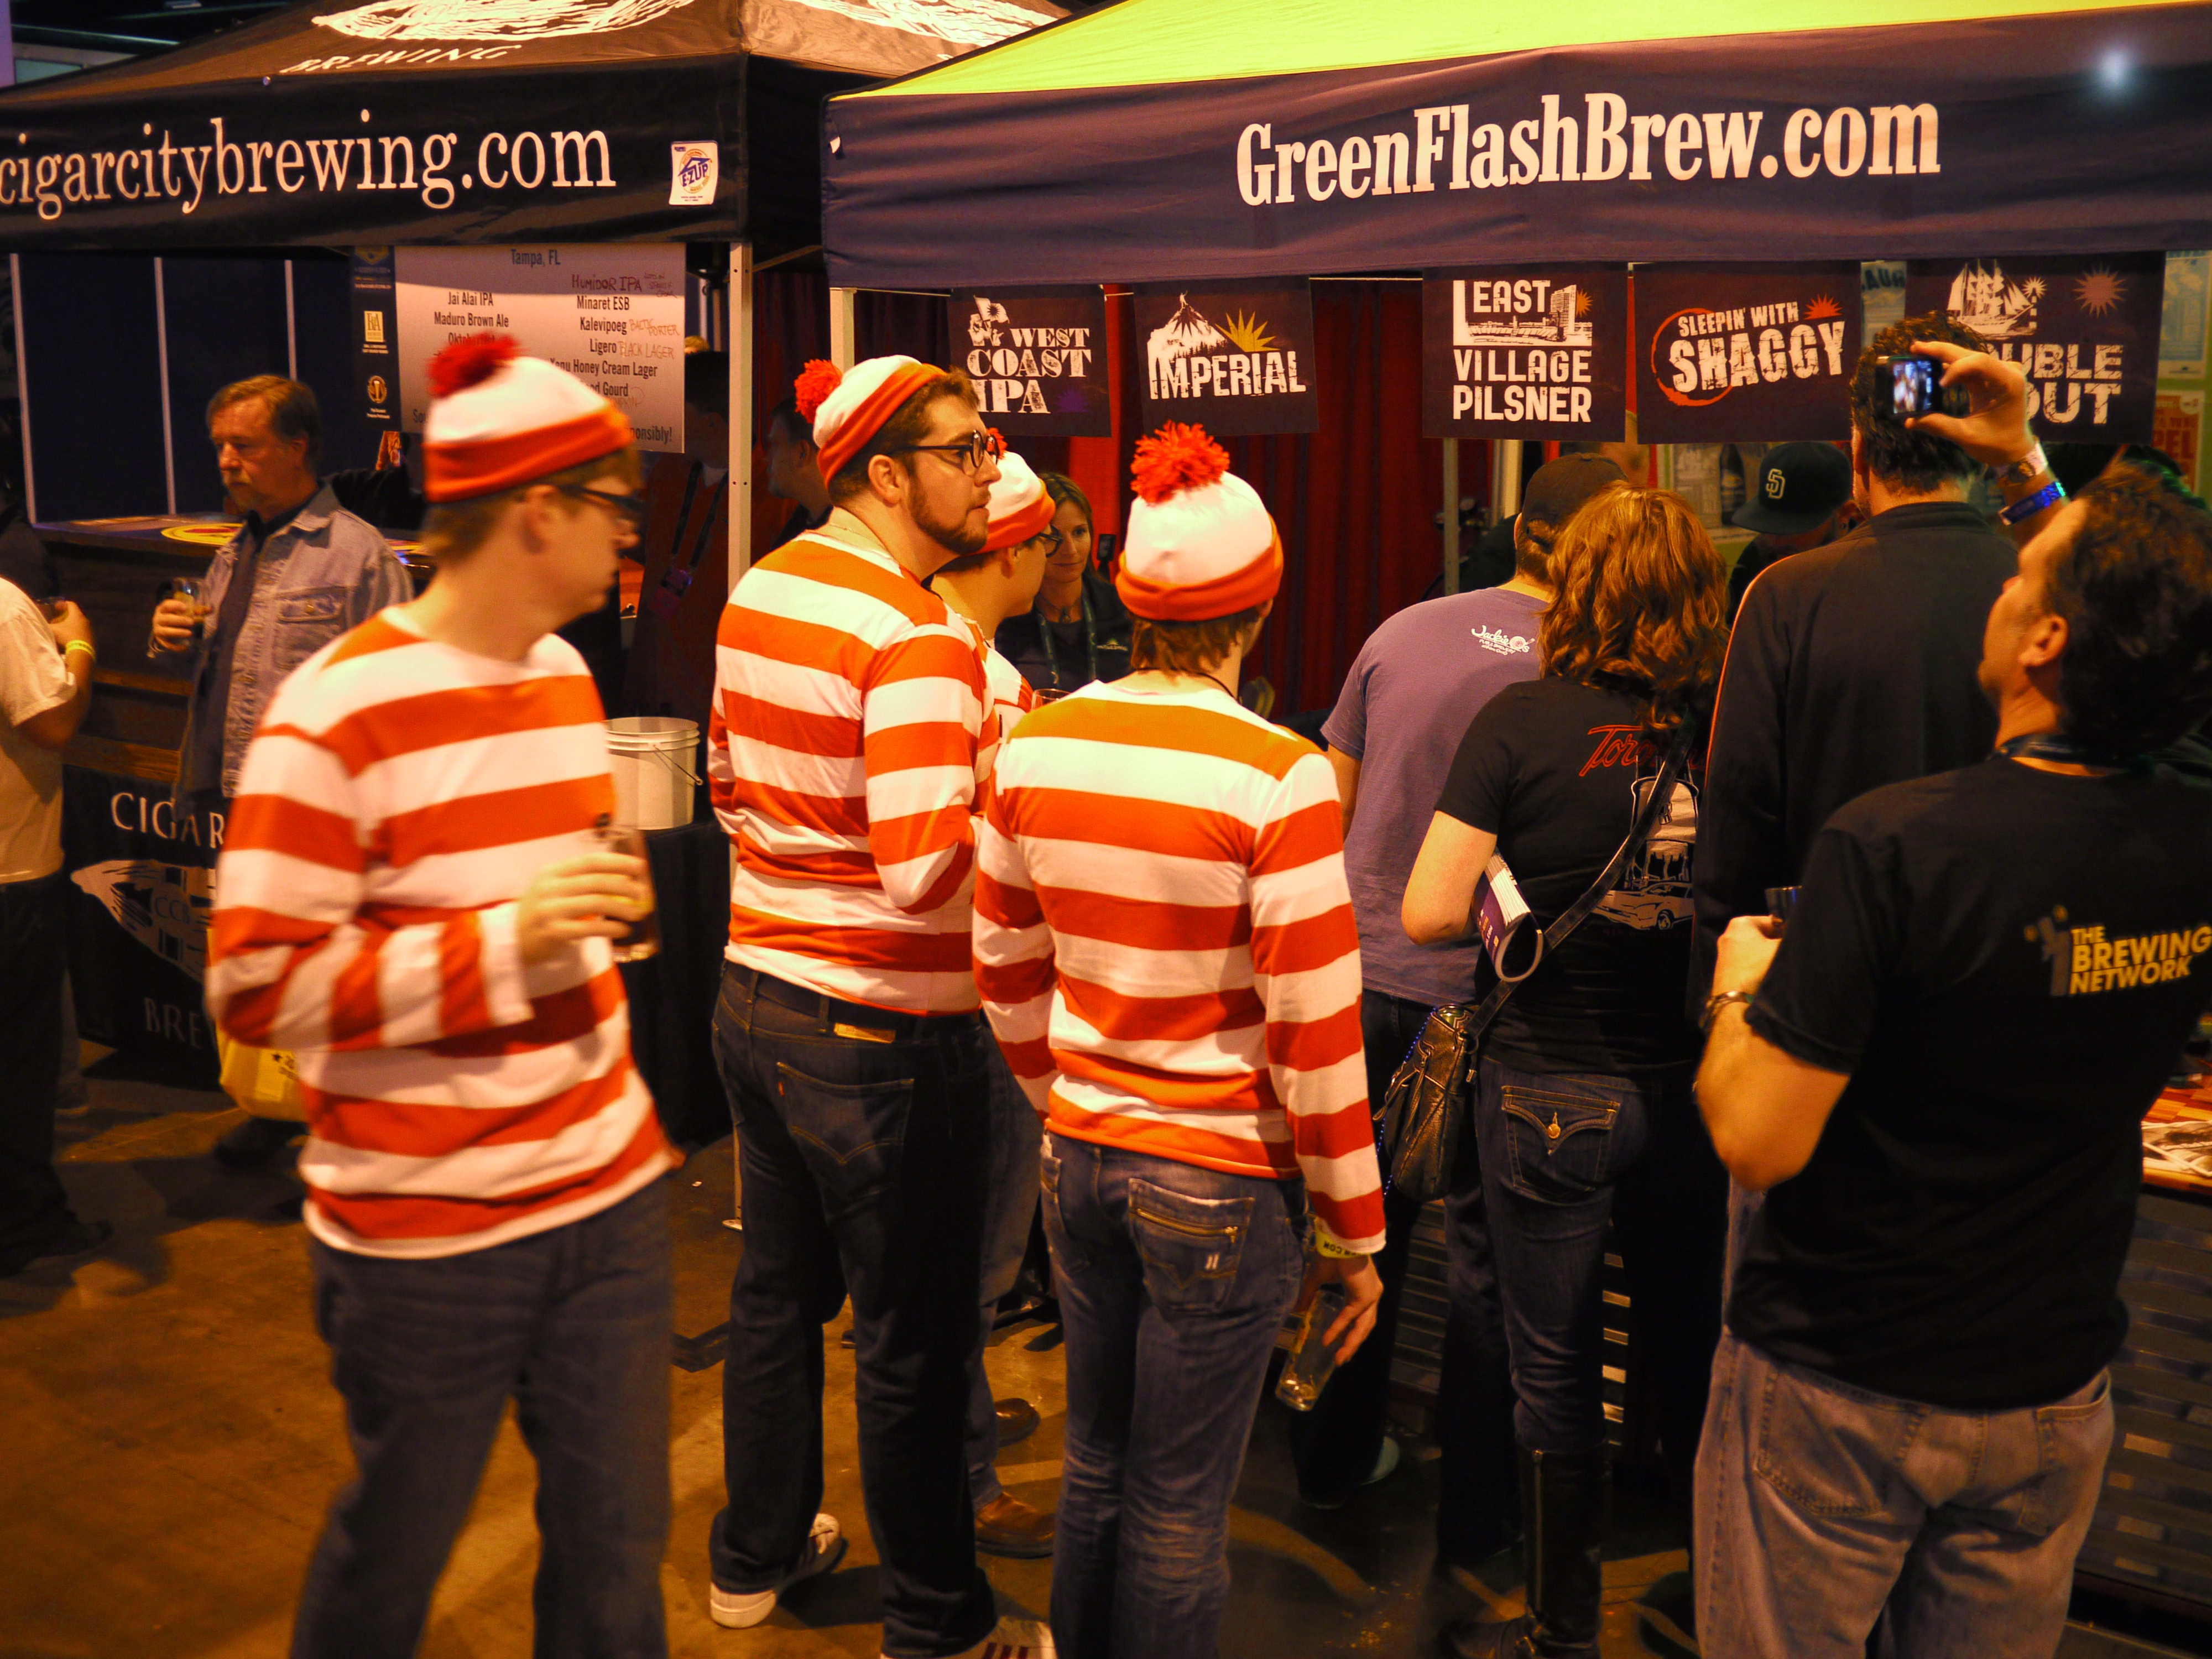 A group of Waldos at the Green Flash Brewing Company's booth.